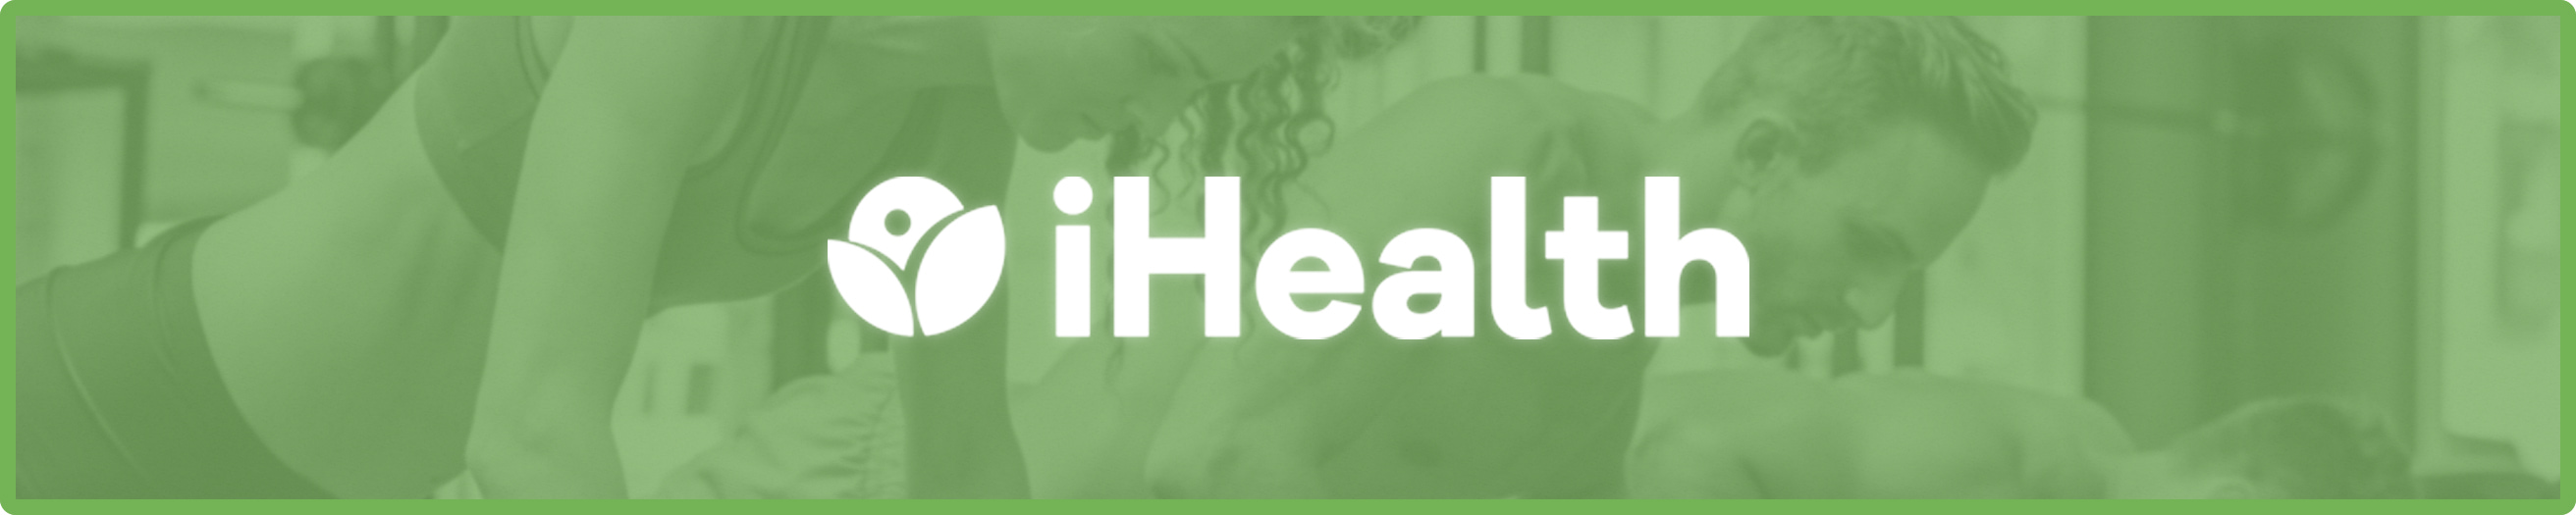 ihealth about us logo